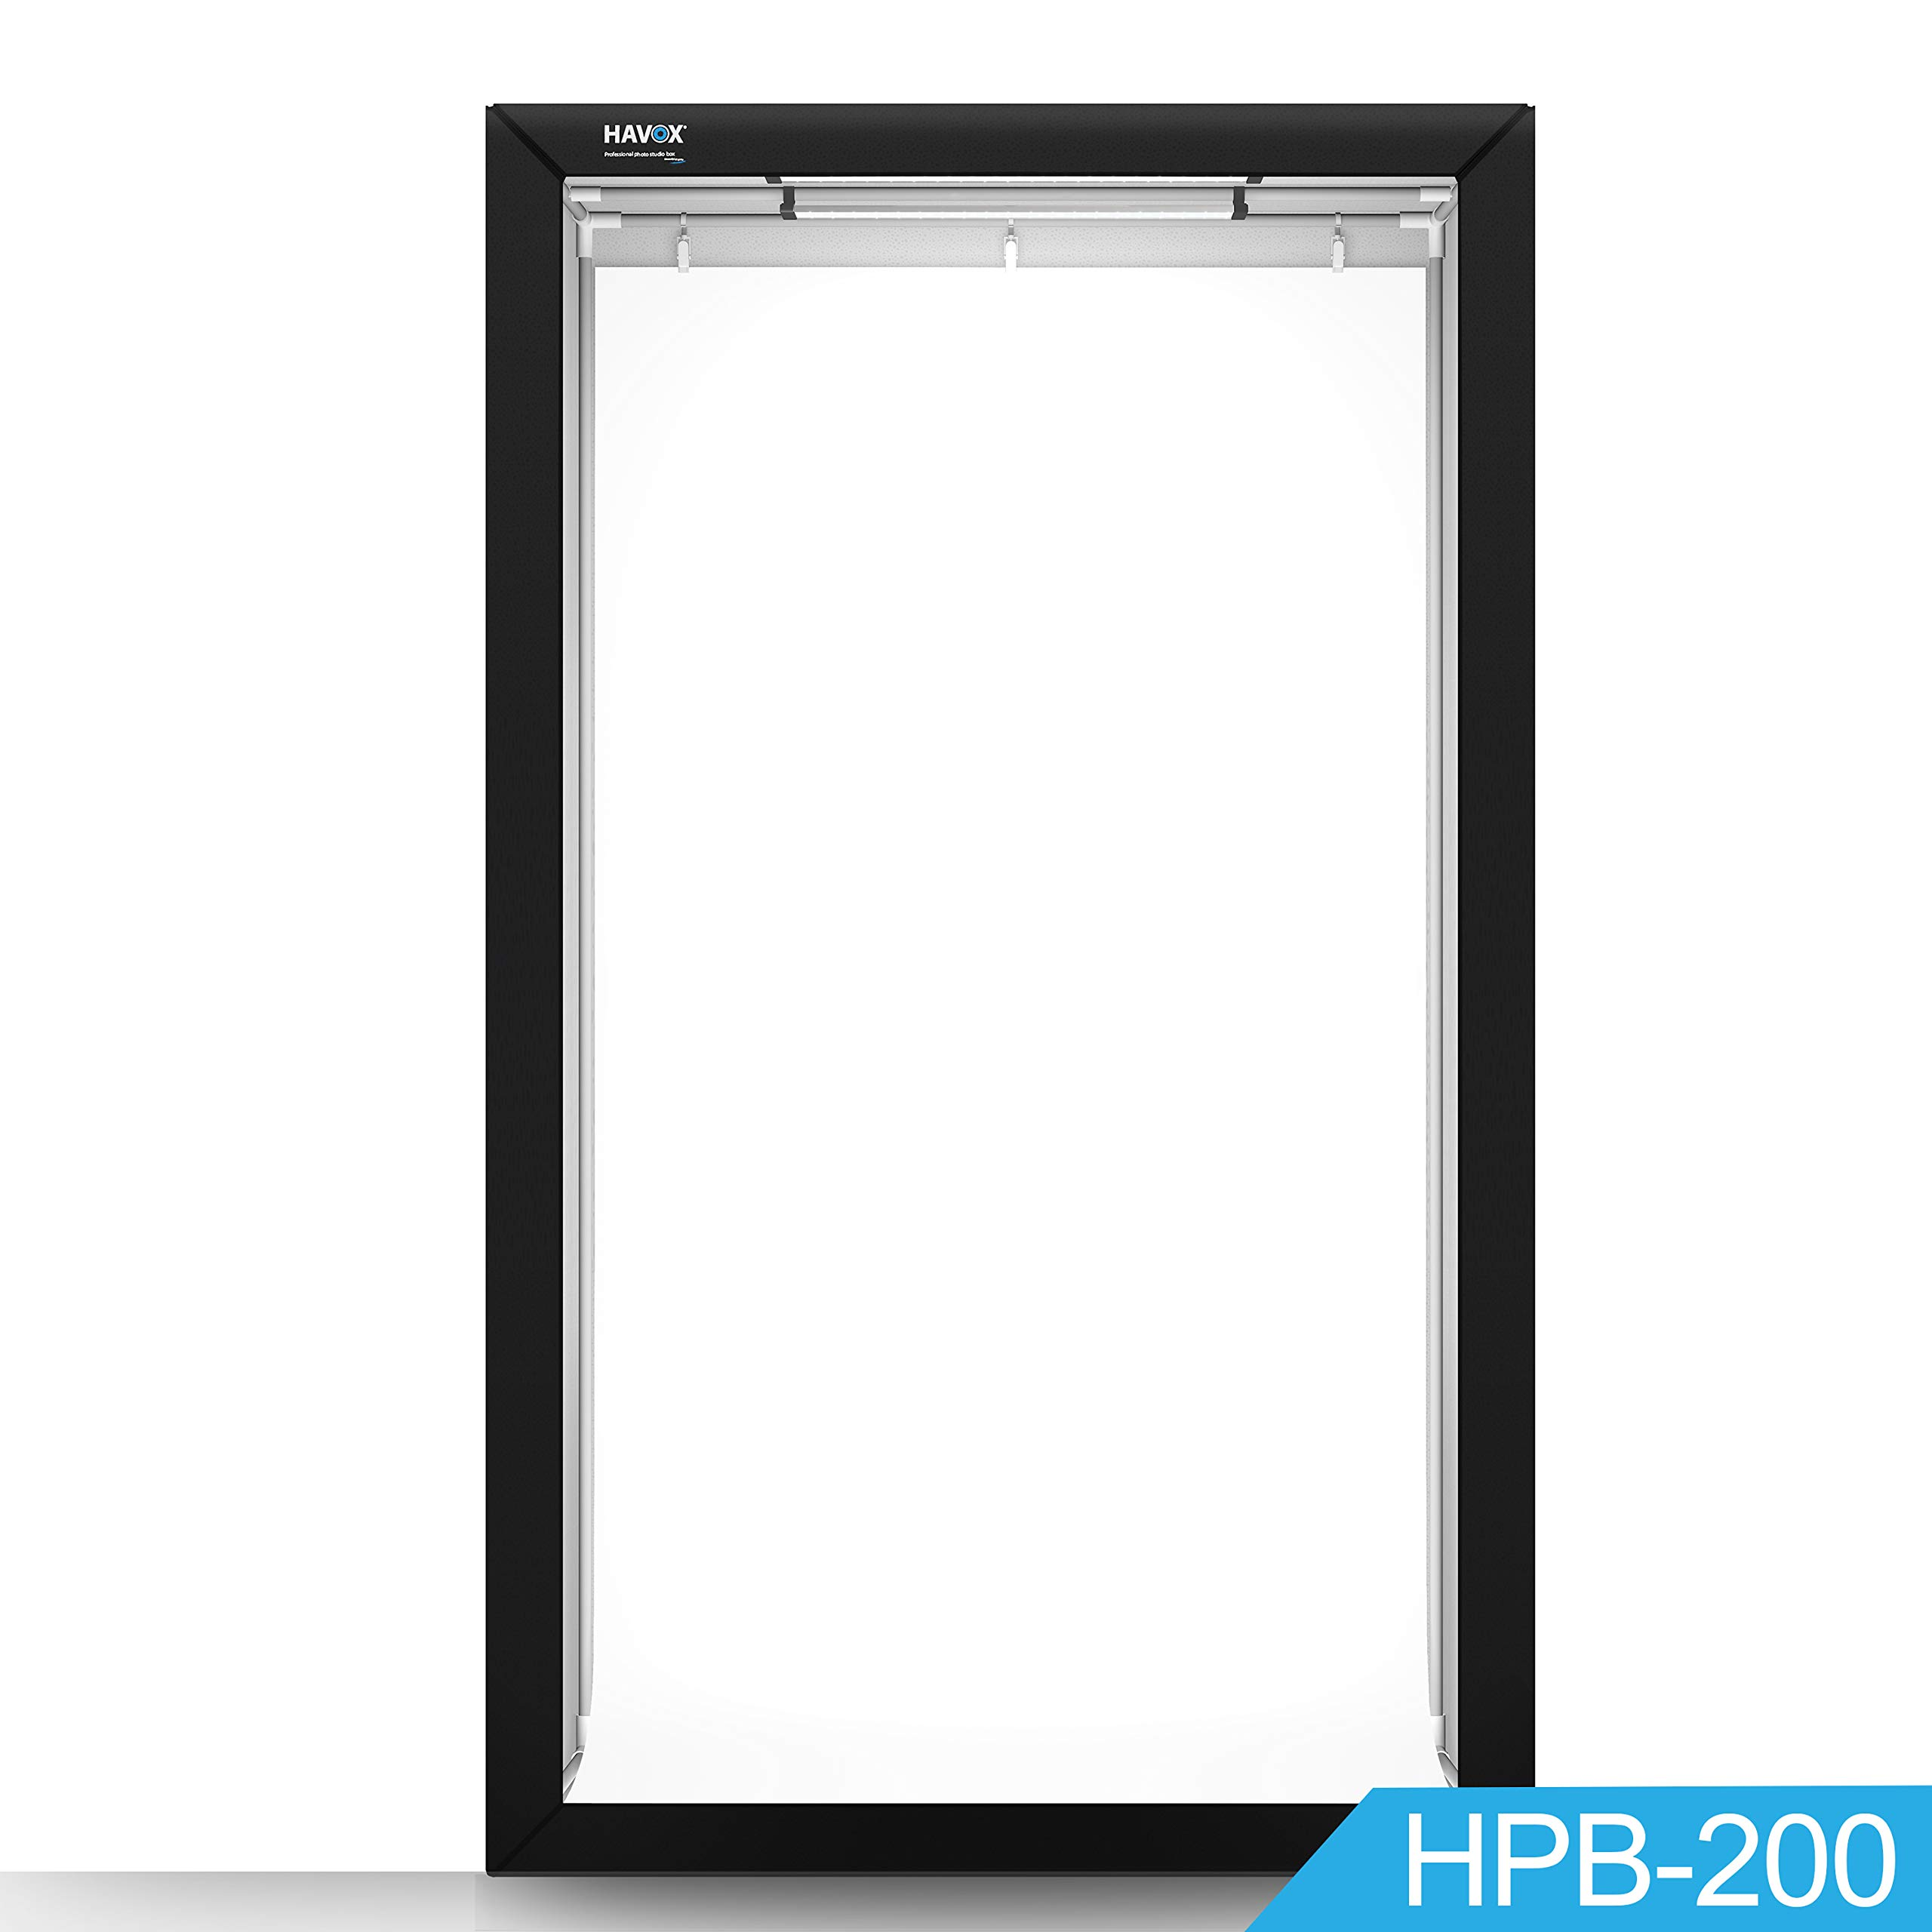 HAVOX - Photo Booth HPB-200 -Dimension 47''x32''x78'' - Super Bright LED Lighting 5500k - CRI 93 - Make Your Commercial Photos e-Commerce by HAVOX